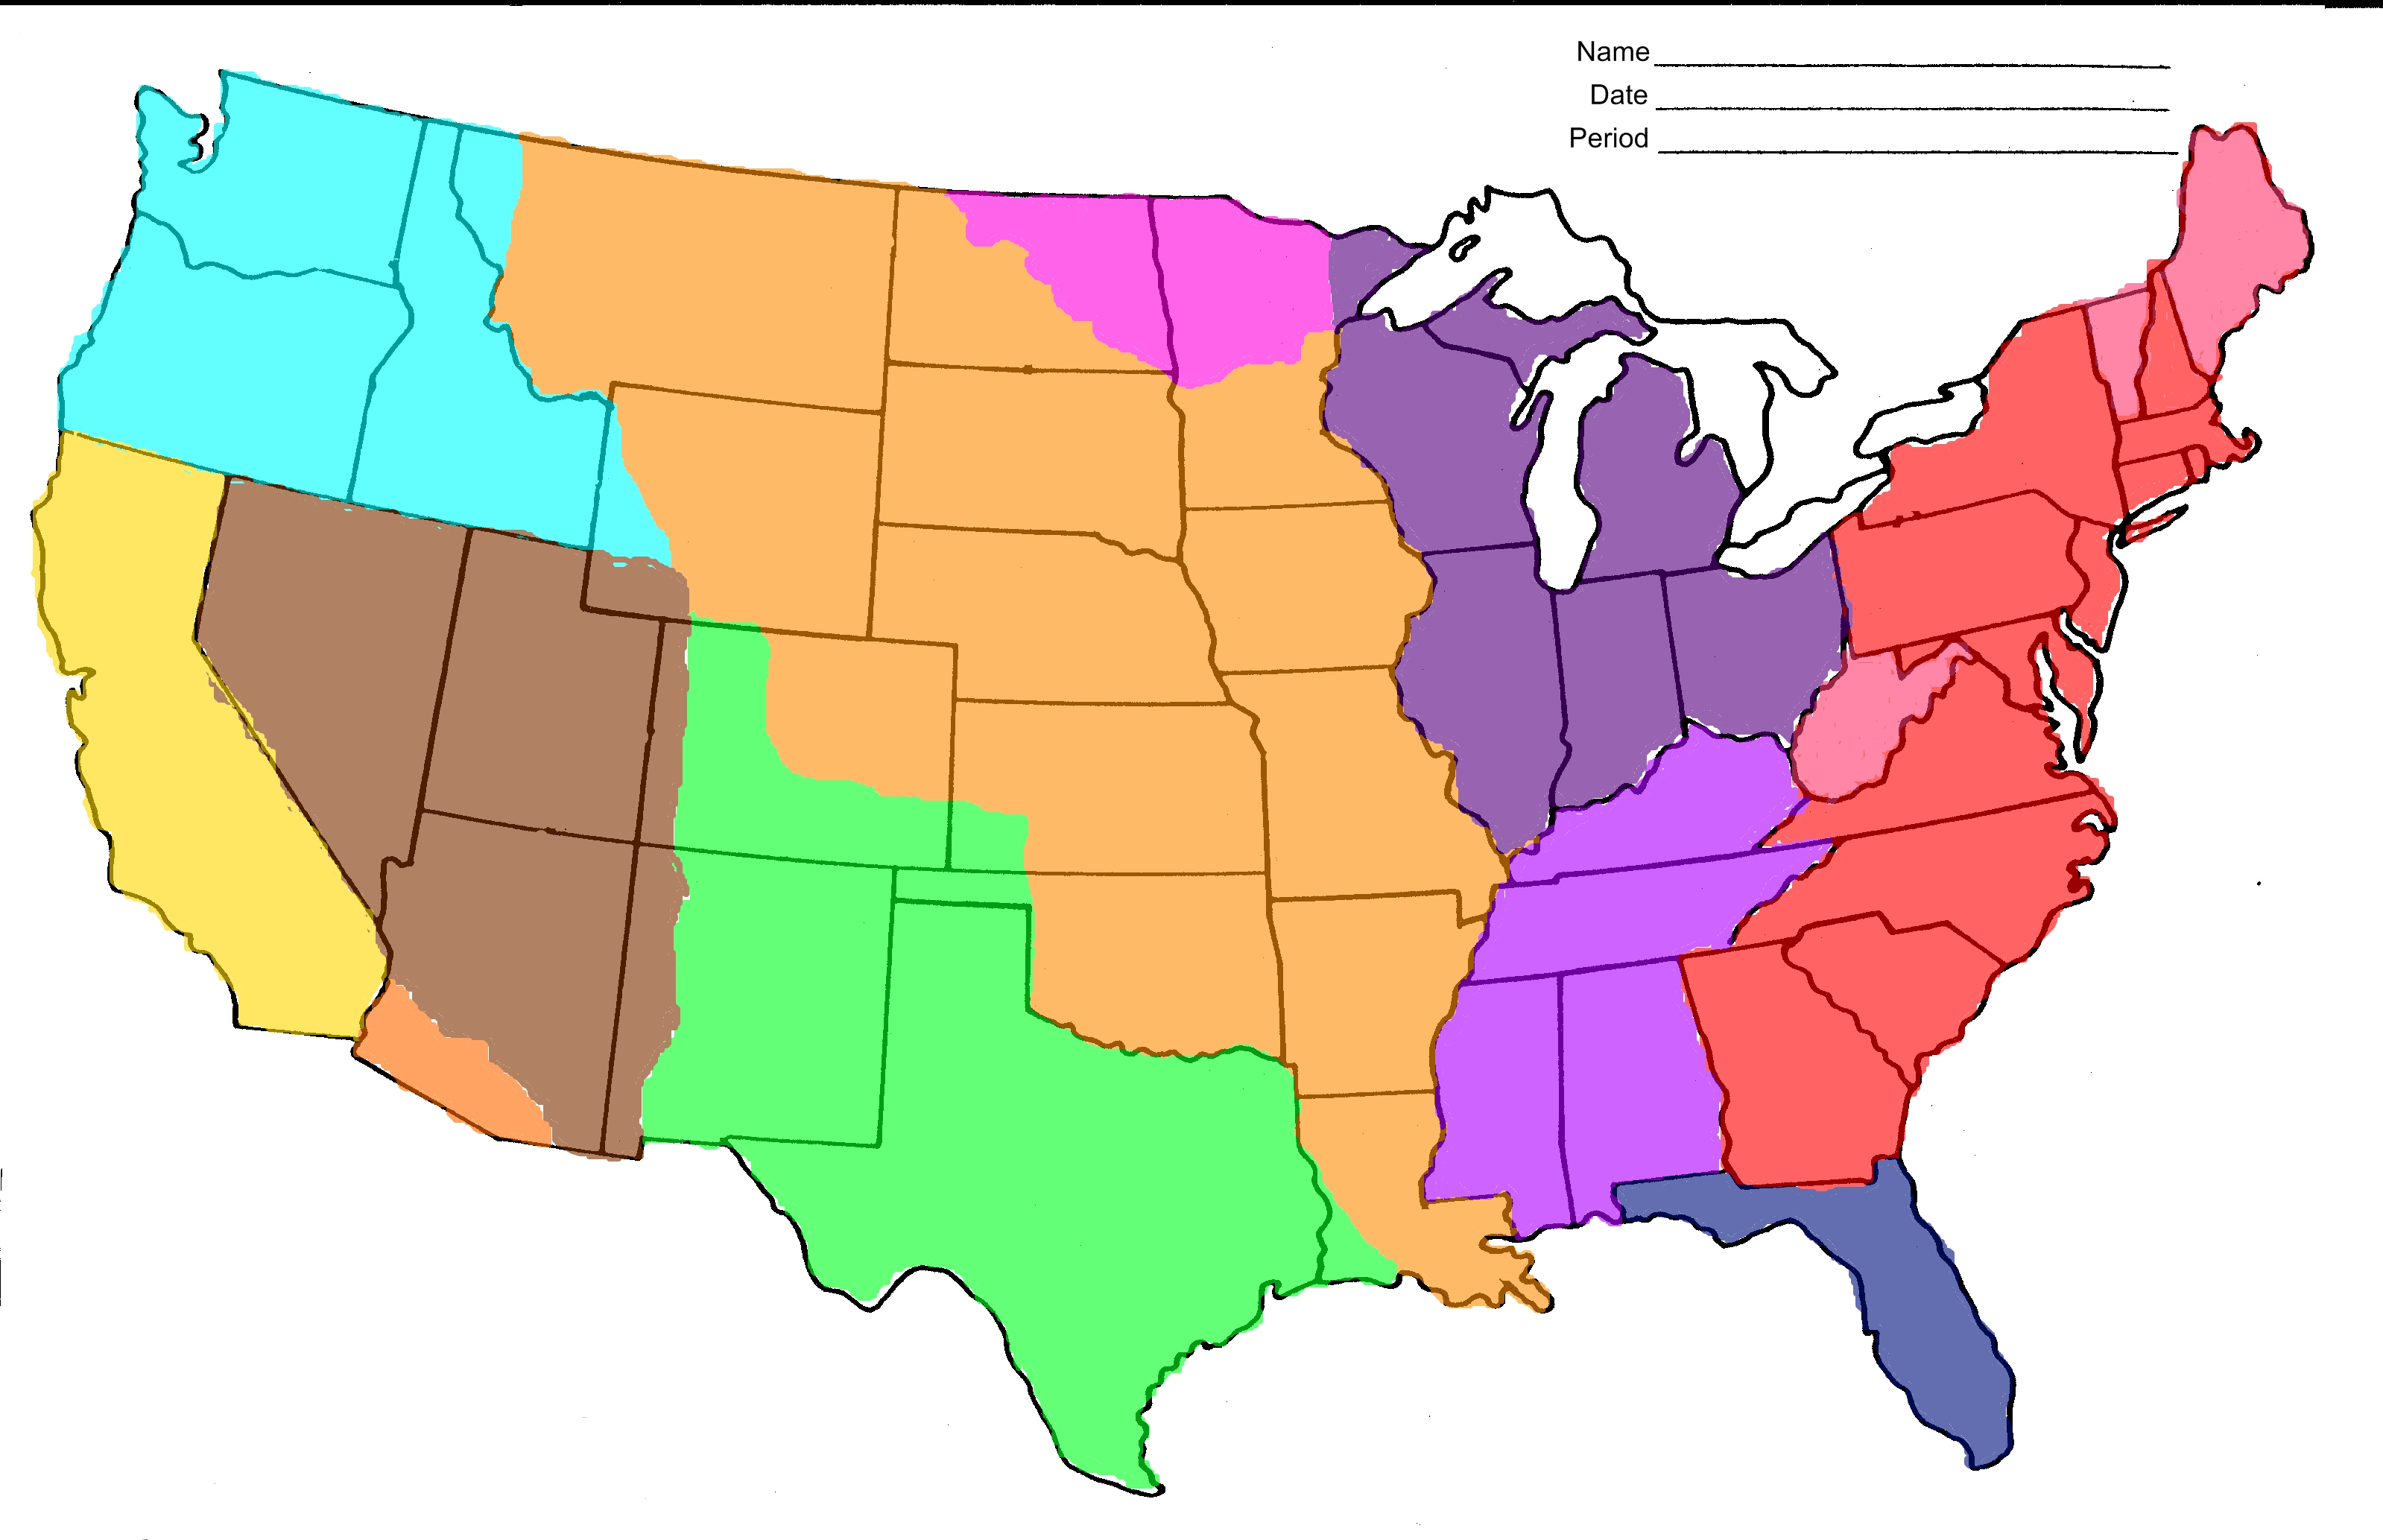 united states westward expansion essay Elbow room - western expansion of the usa schoolhouse rock find this pin   westward expansion essay ideas on responsibility westward expansion.